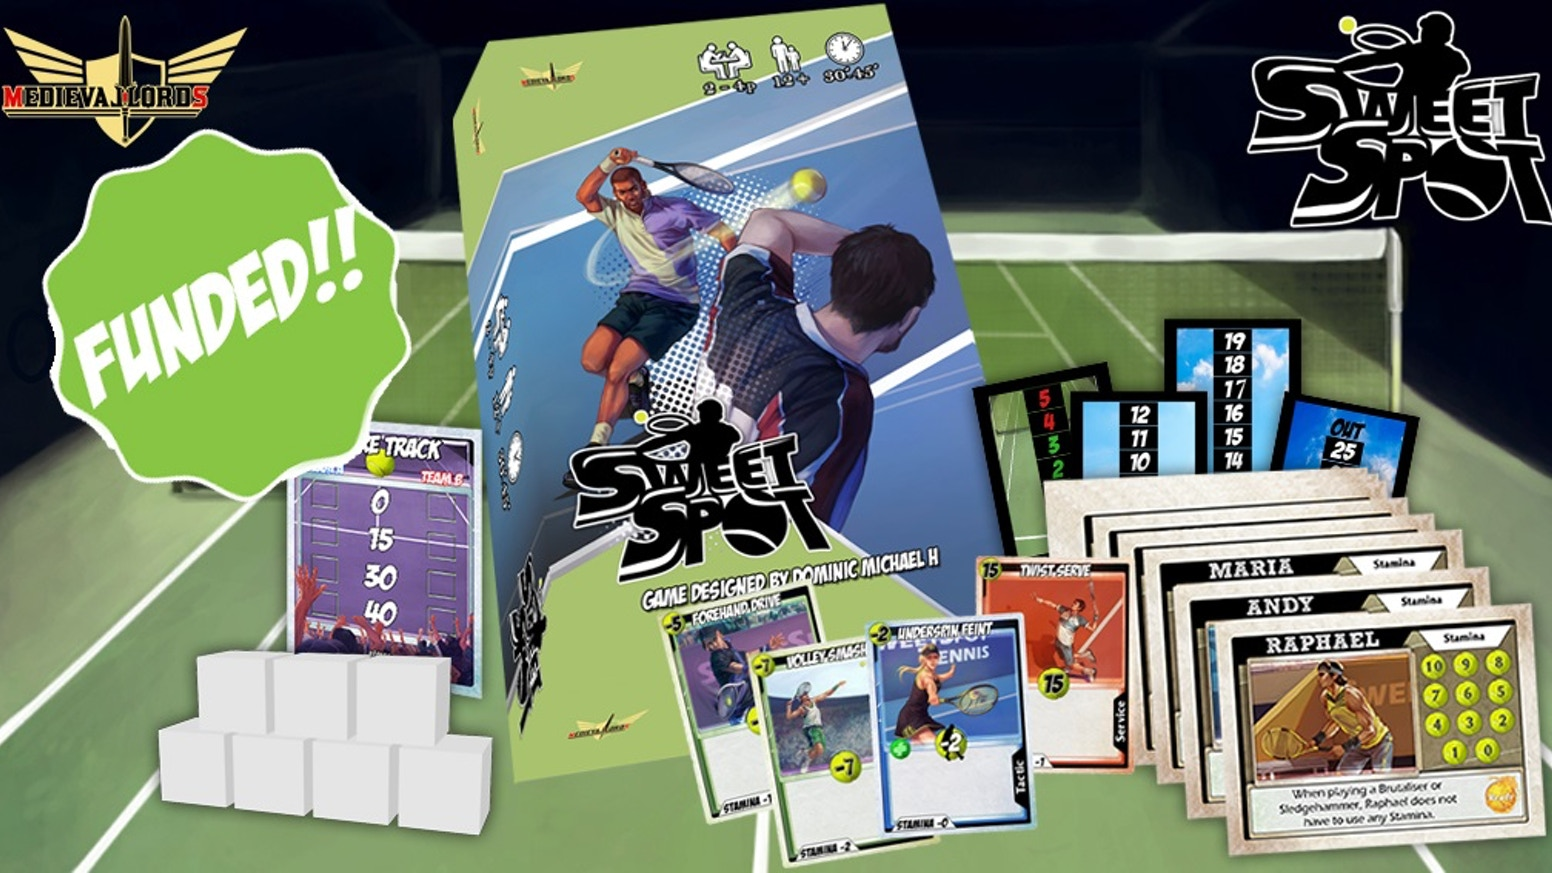 A tactical card game of Tennis that tests teamwork and communication in Doubles mode! Or card skills in 1-on-1. SOLO MODE AVAILABLE!